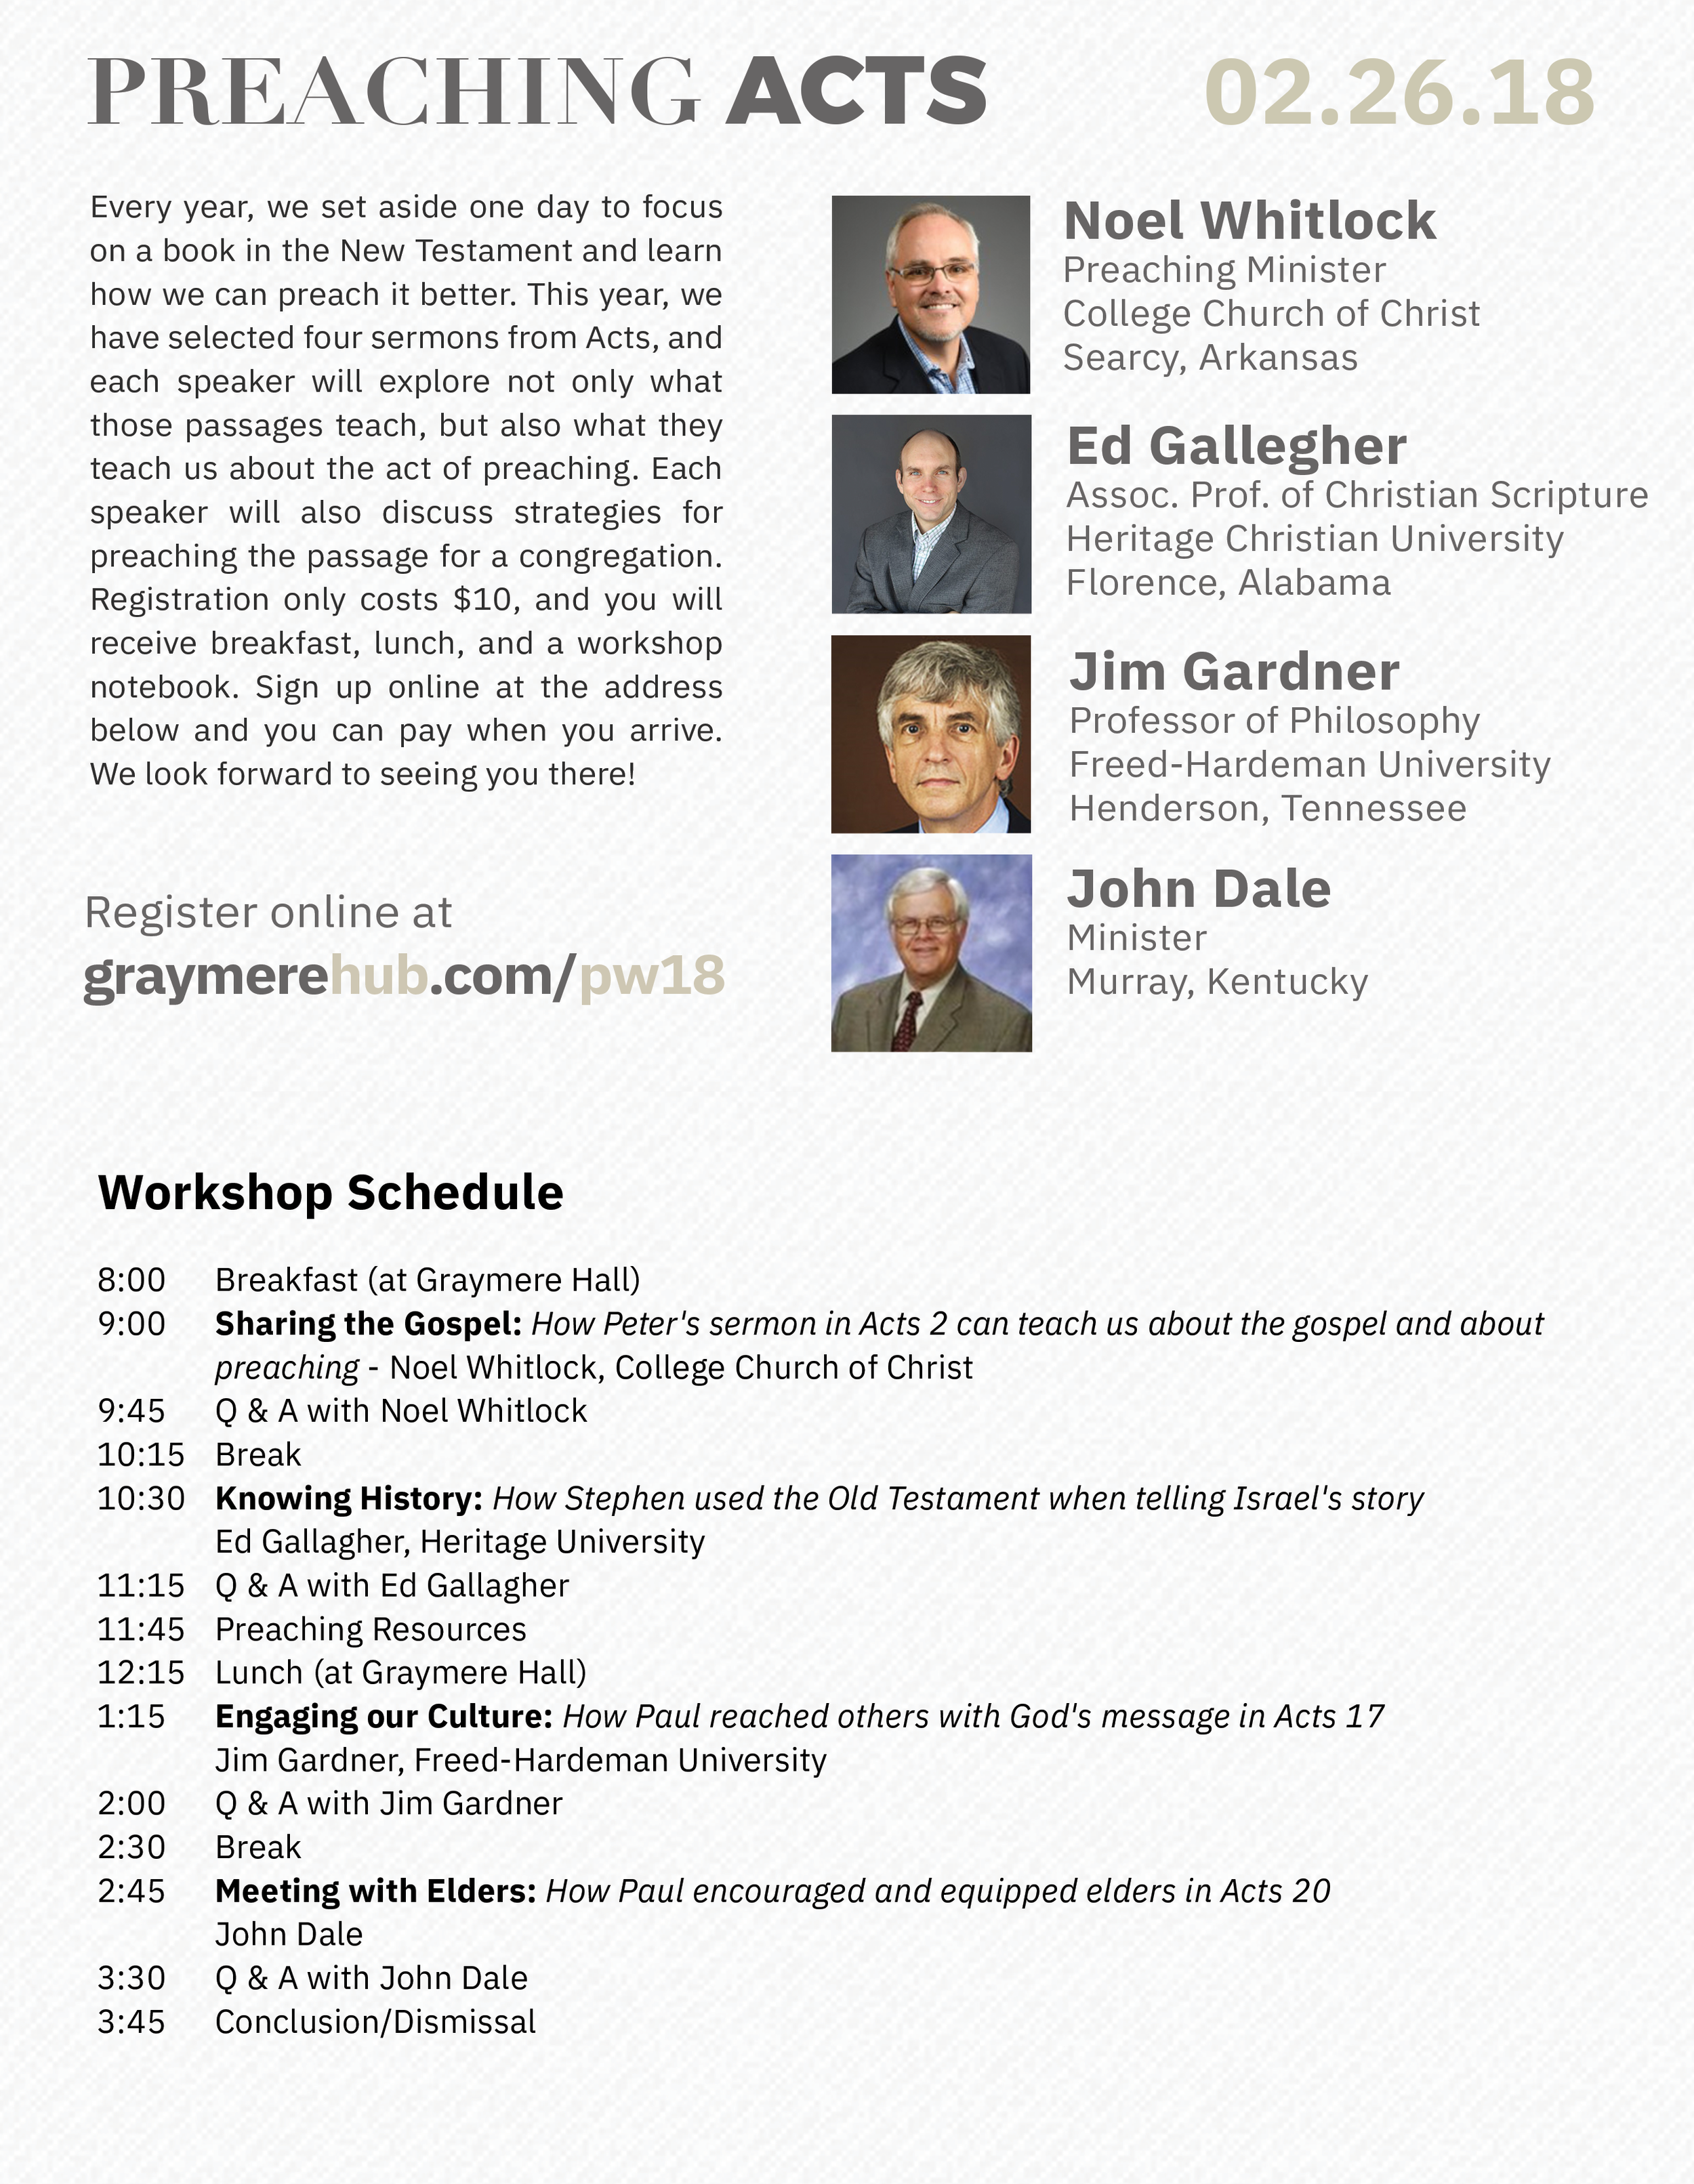 Click for larger view of speakers and schedule